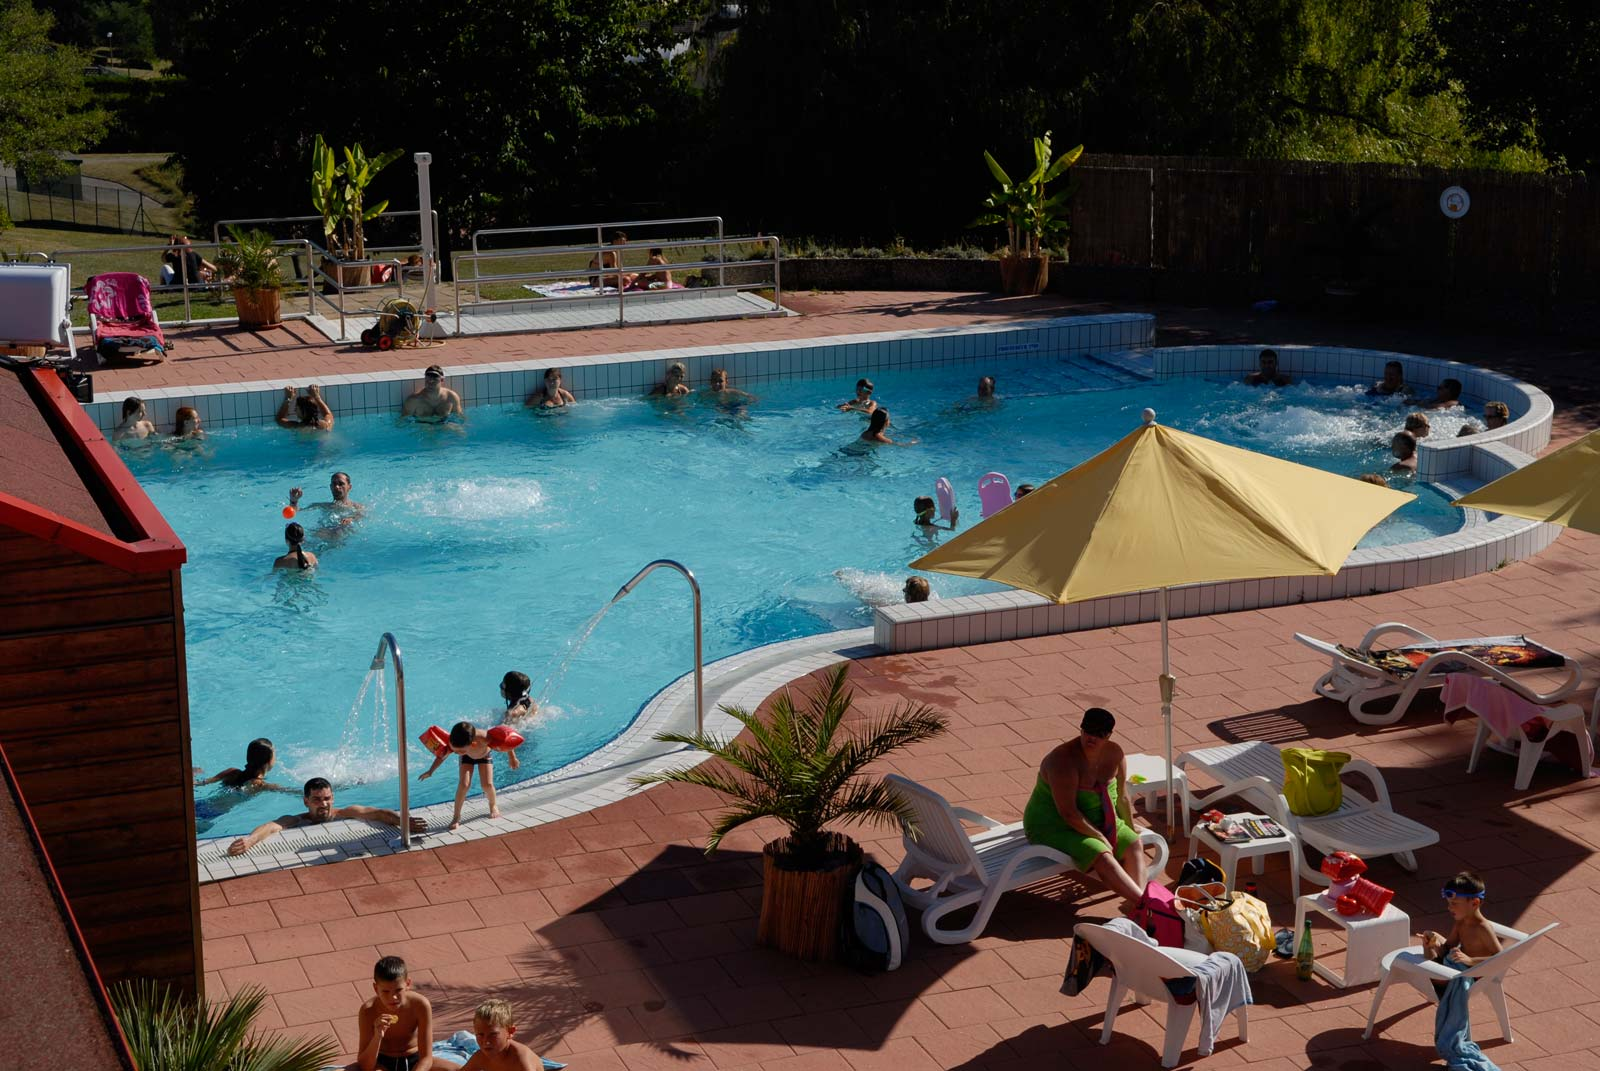 Piscine t hiver les aqualies for Piscine niederbronn